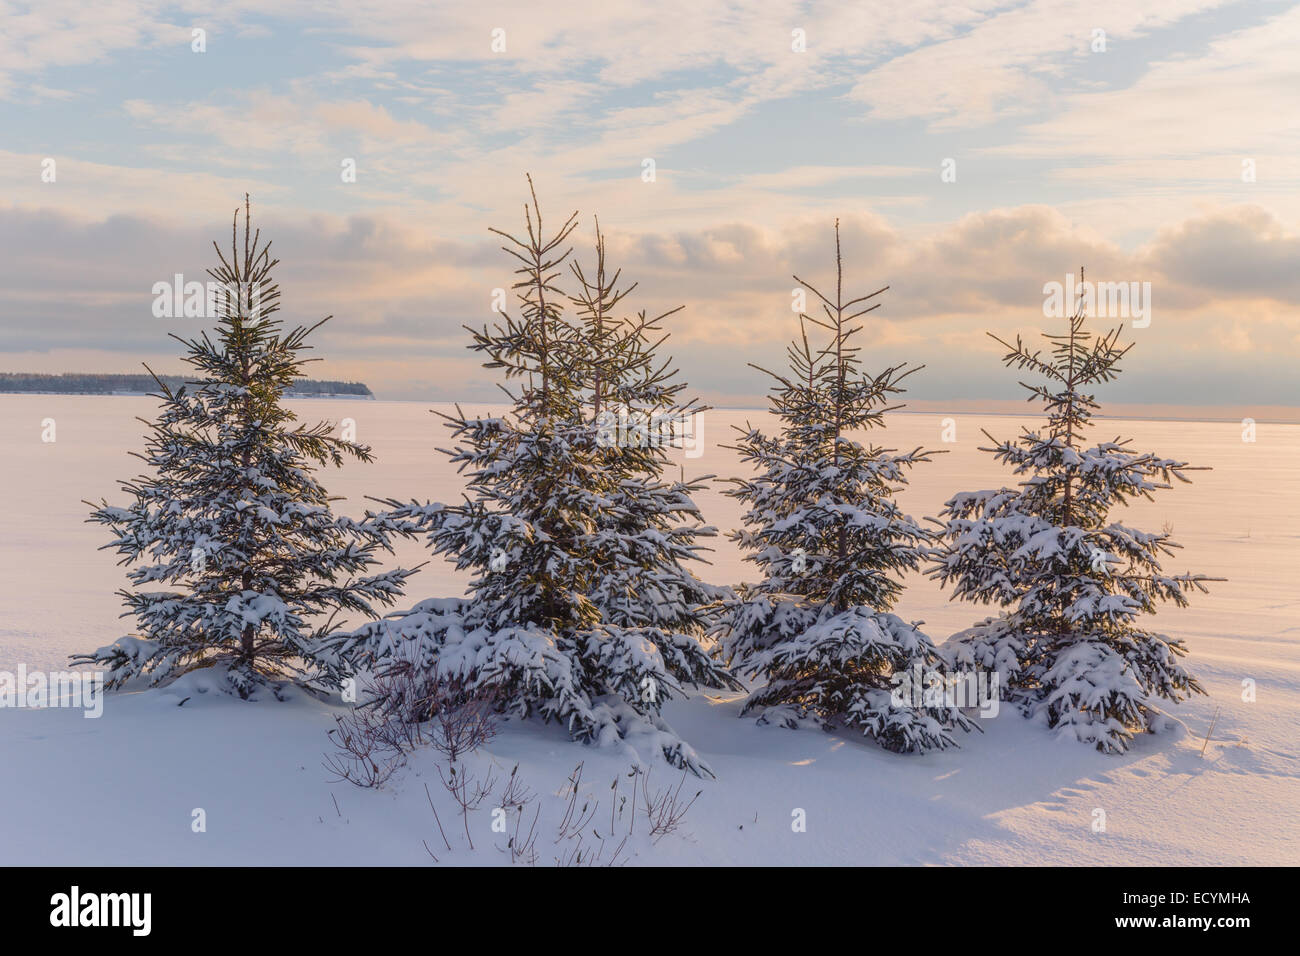 Picea glauca or white spruce trees along the frozen waterfront in rural Prince Edward Island, Canada. - Stock Image